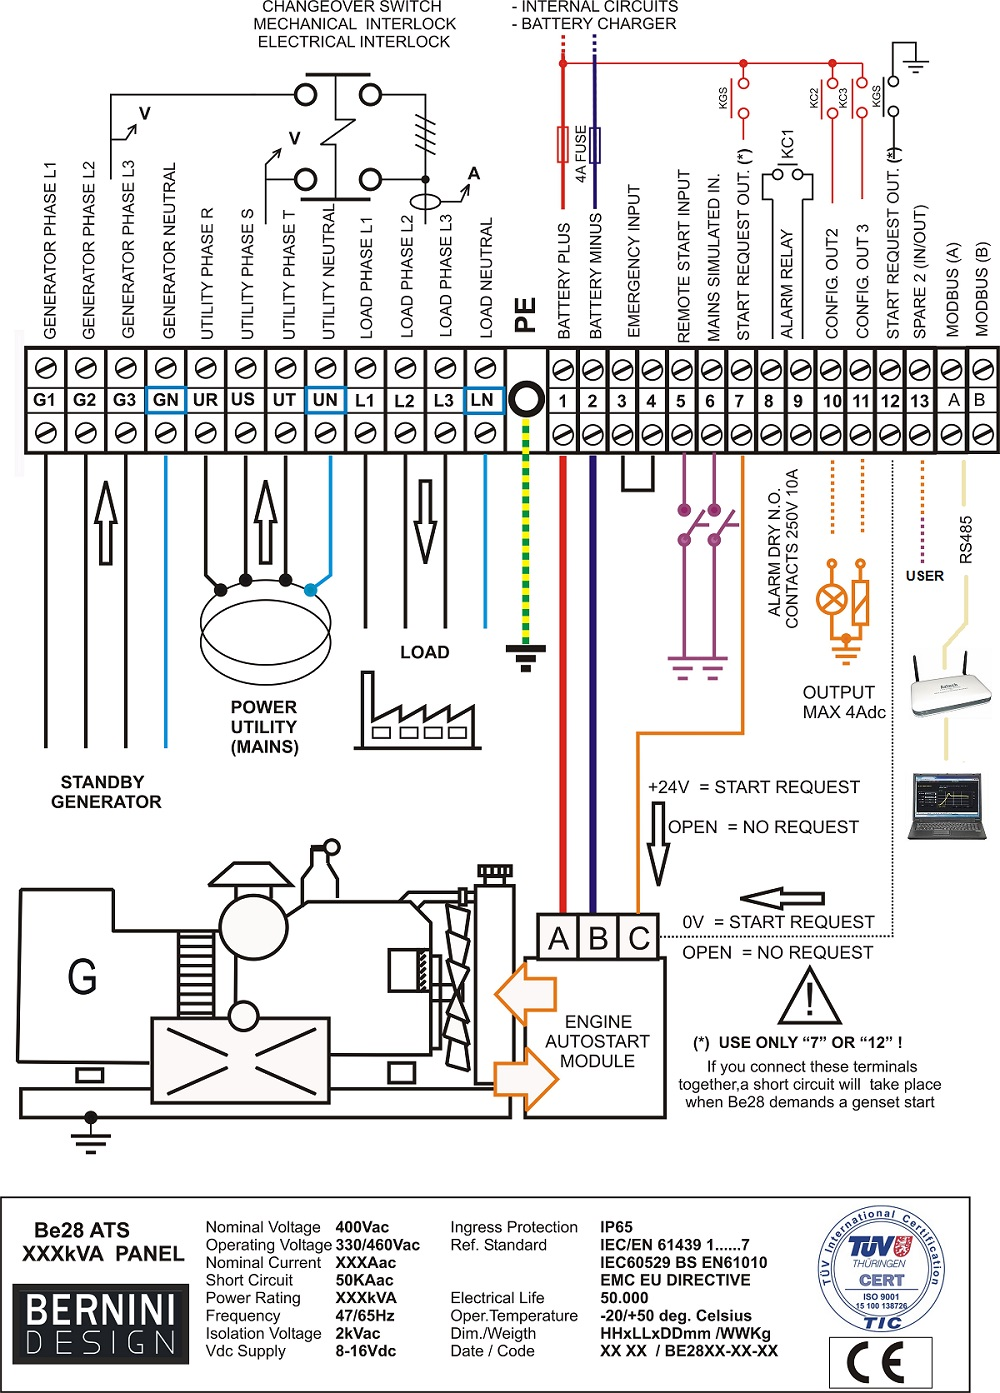 Automatic Transfer Switch Wiring Diagram Genset Controller An Schematic Typical